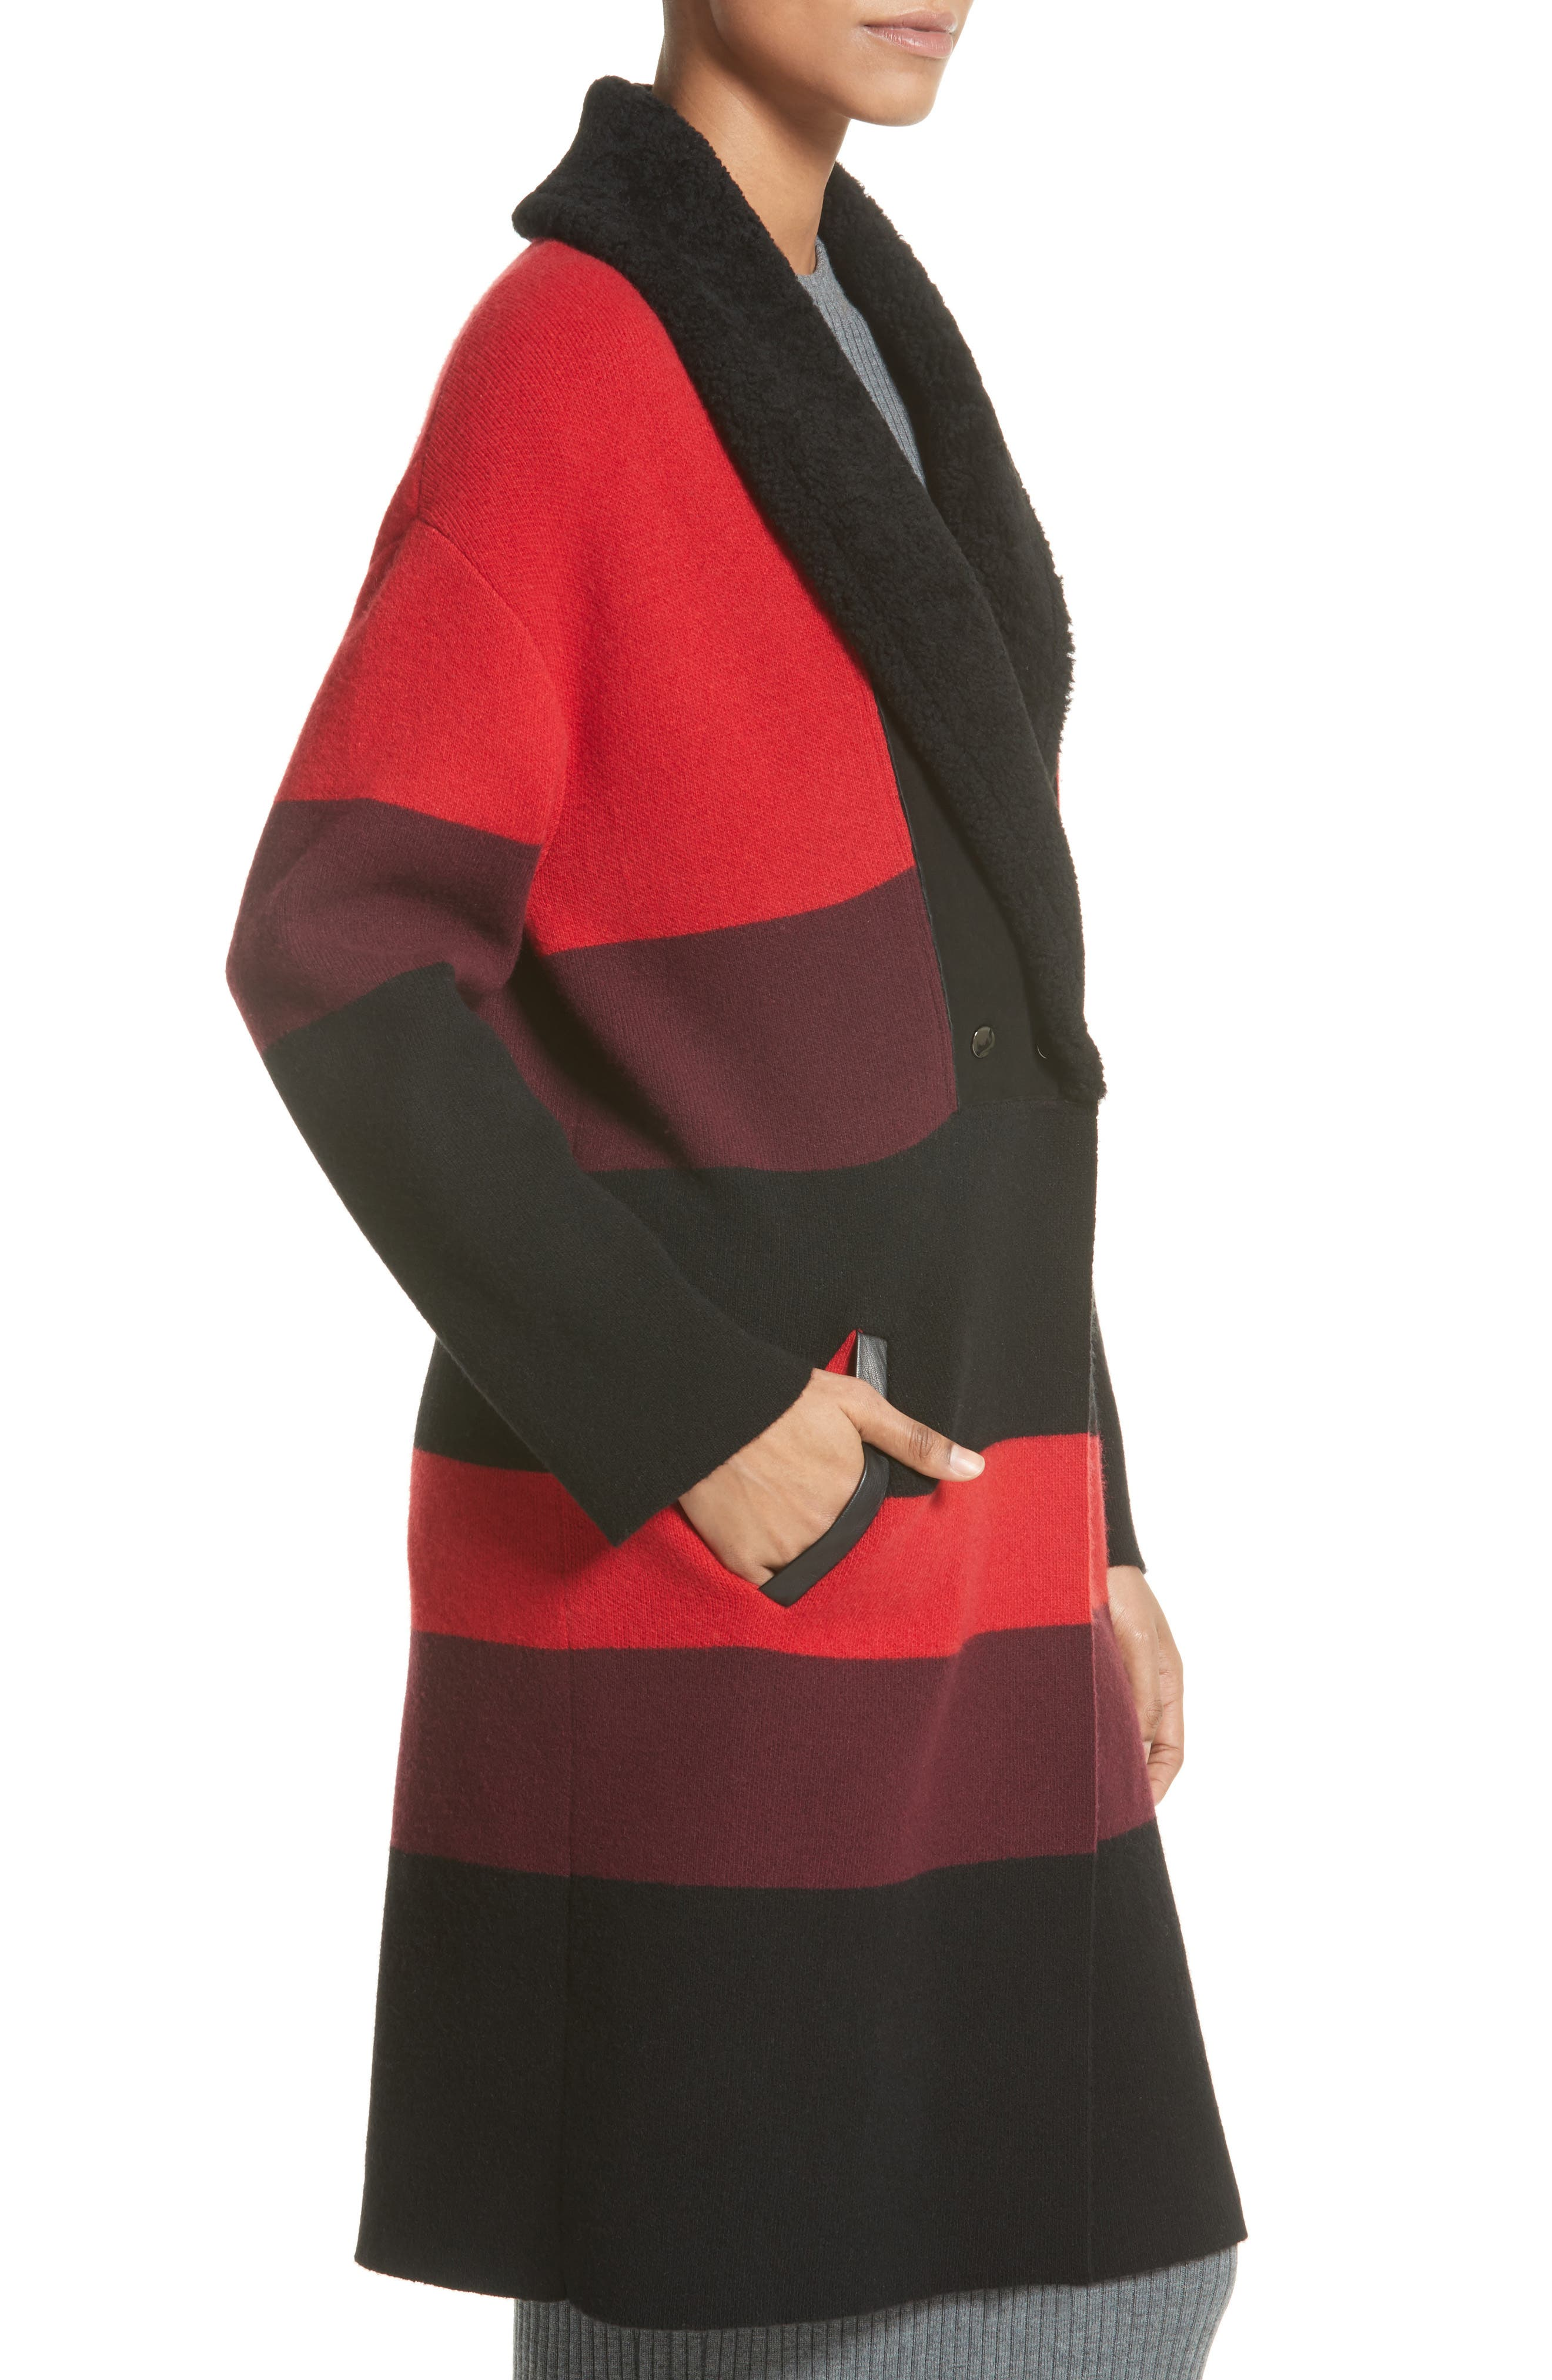 Double Knit Felted Wool Blend Coat with Genuine Shearling Collar,                             Alternate thumbnail 4, color,                             Caviar/ Sari Multi